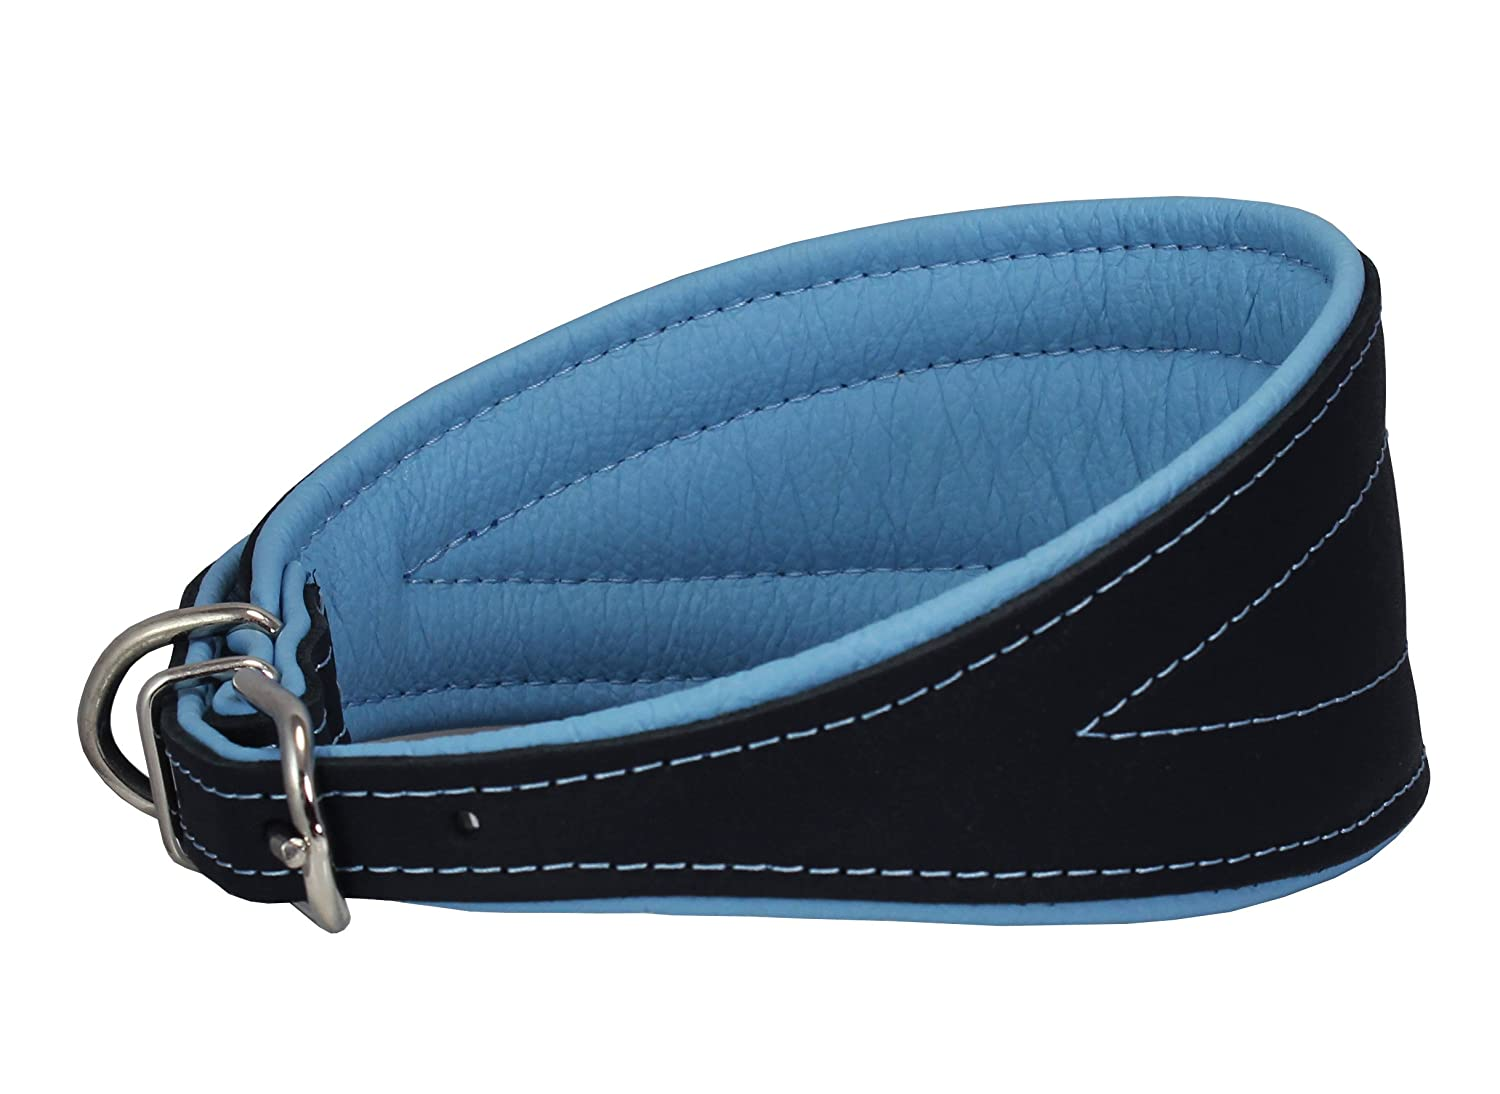 Baby-bluee 16.75\ Baby-bluee 16.75\ Real Leather Extra Wide Padded Tapered Dog Collar Glossy Black Greyhound Saluki Deerhound Lurcher Whippet Dachshund (16.75 -20  Neck; 3  Wide, Baby-bluee)